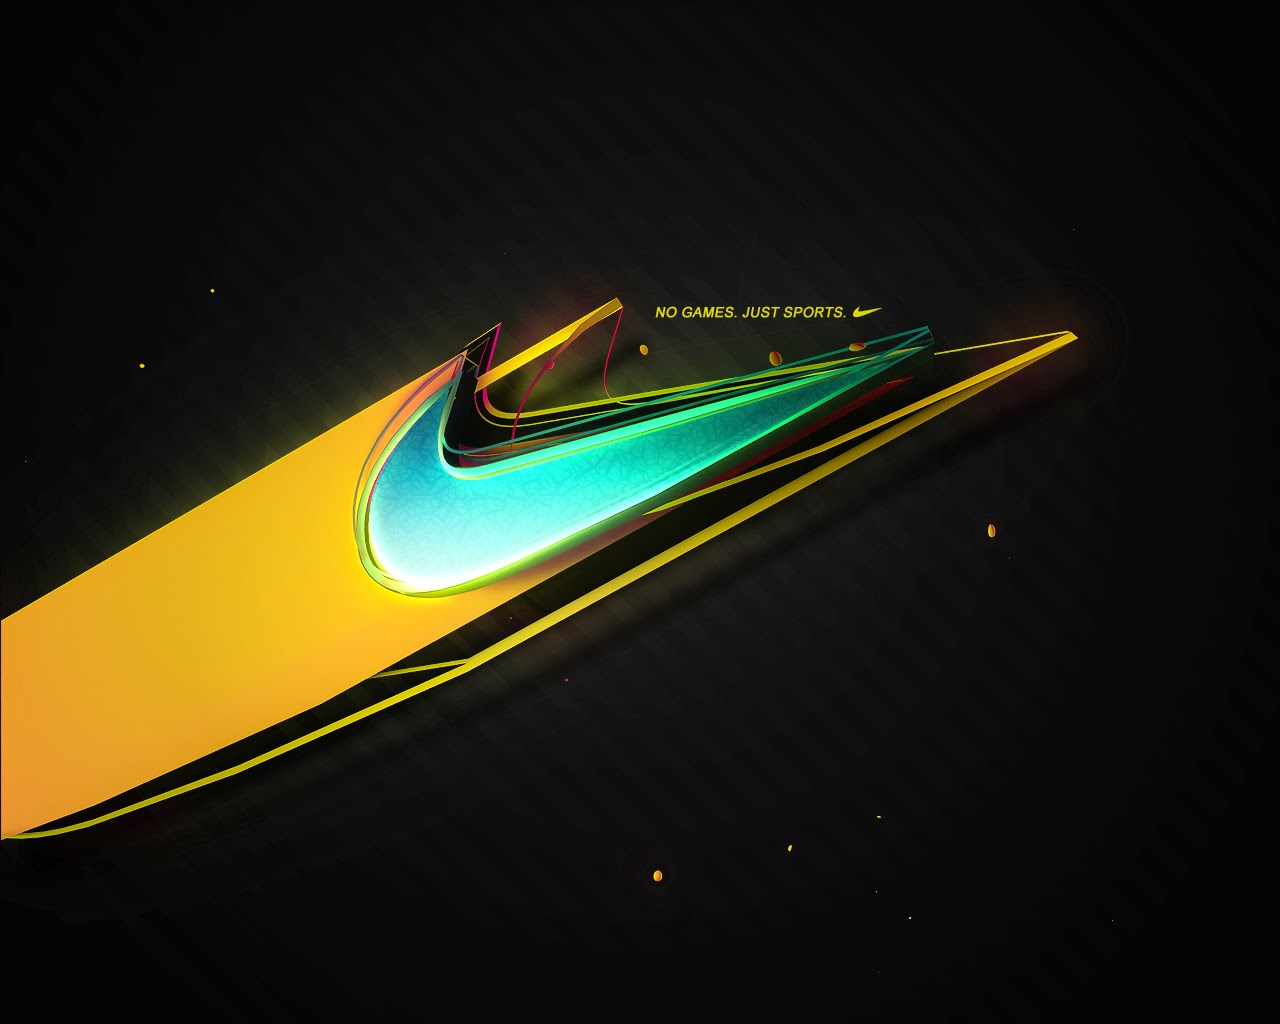 Cool Nike Logos 62 103079 Images HD Wallpapers Wallfoycom | Fashion's Feel | Tips and Body Care